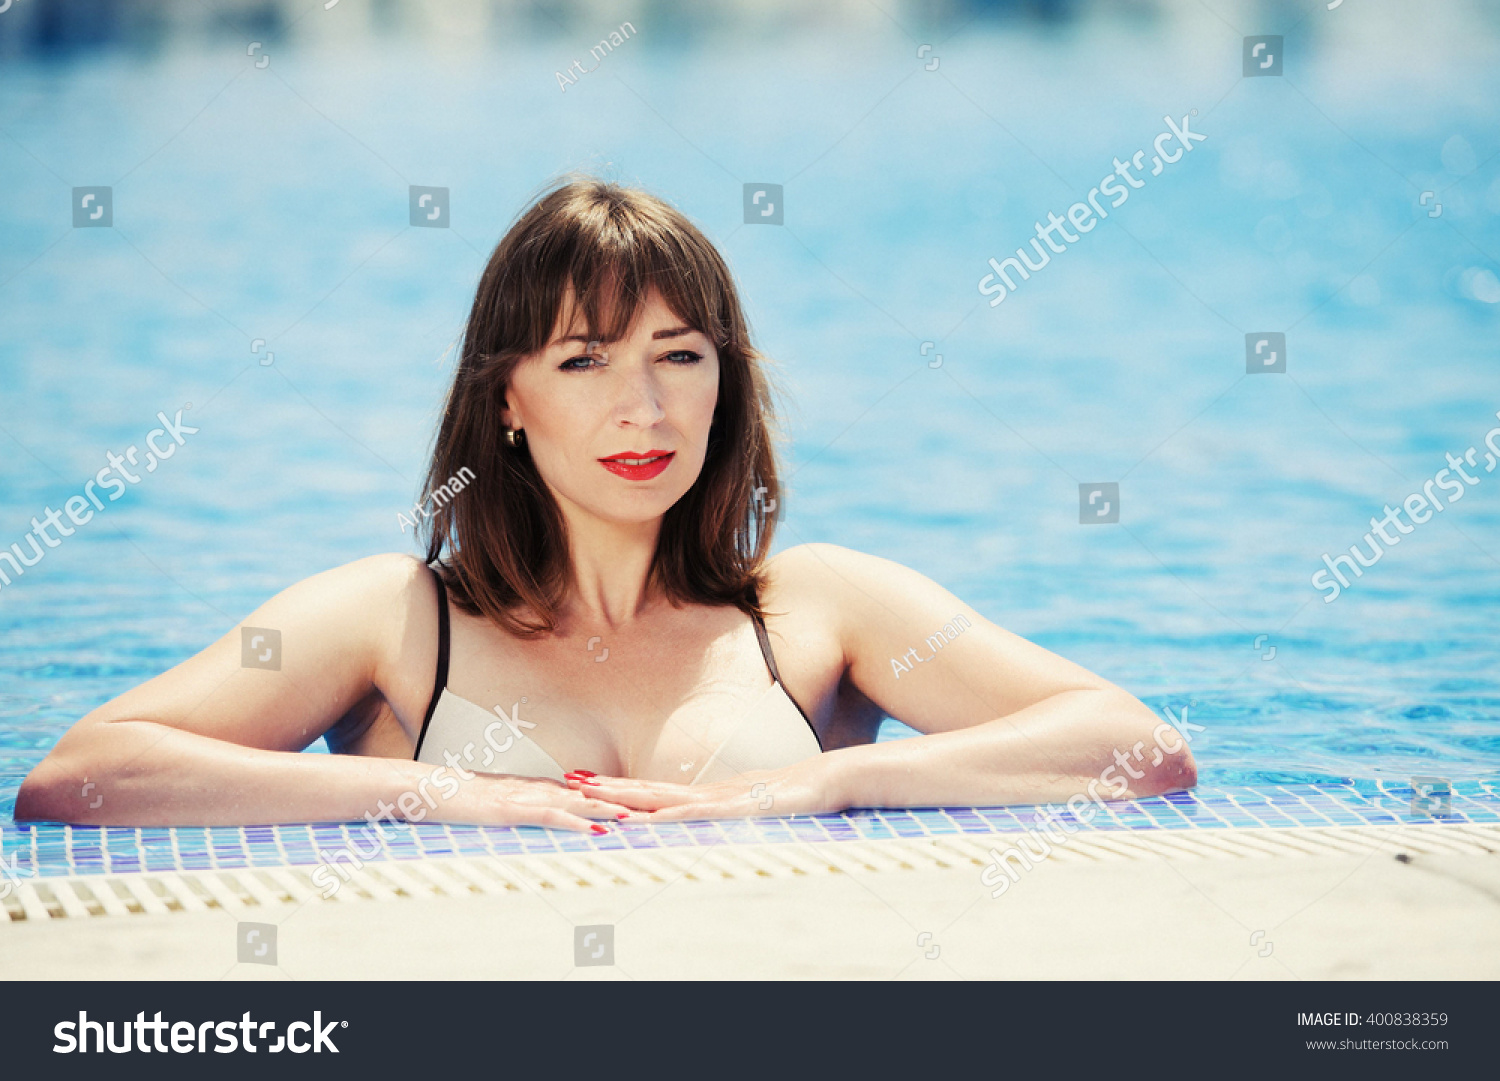 Sexy Young Woman Swimming Pool Blue Stock Photo 400838359 Shutterstock